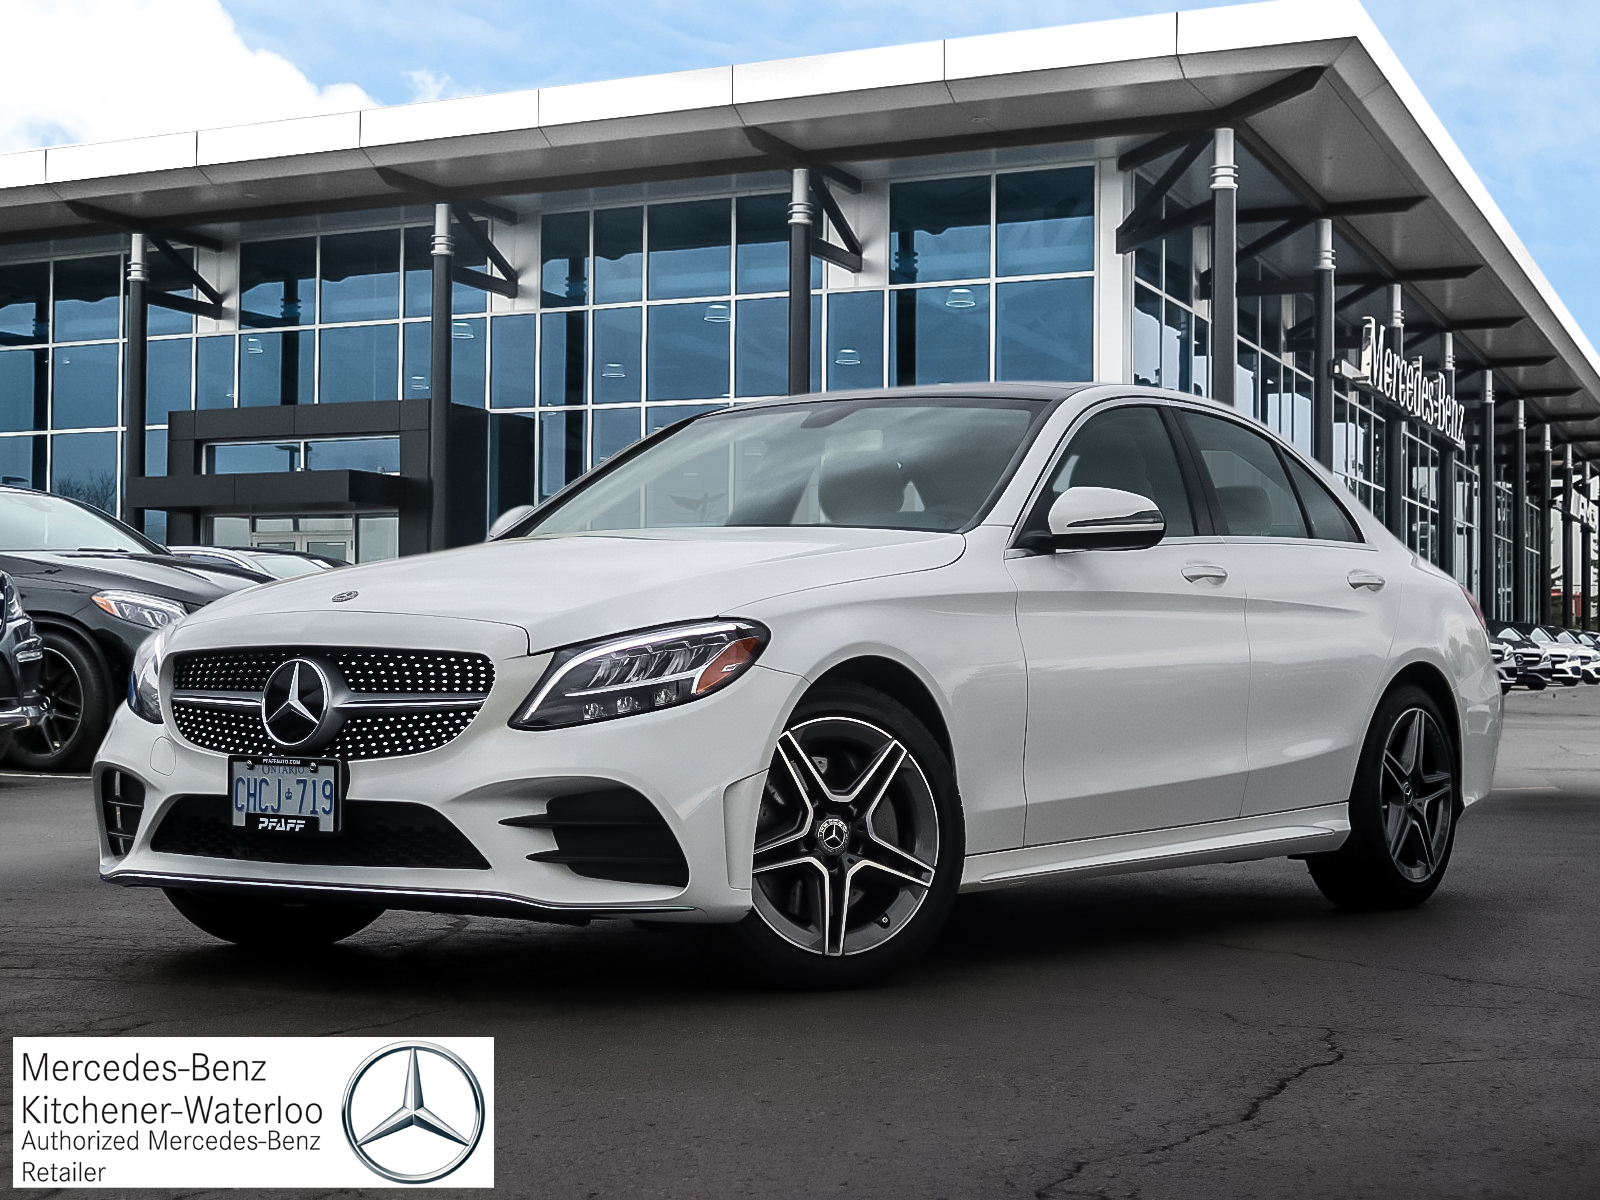 DEMO 2019 Mercedes-Benz C300 4MATIC Sedan